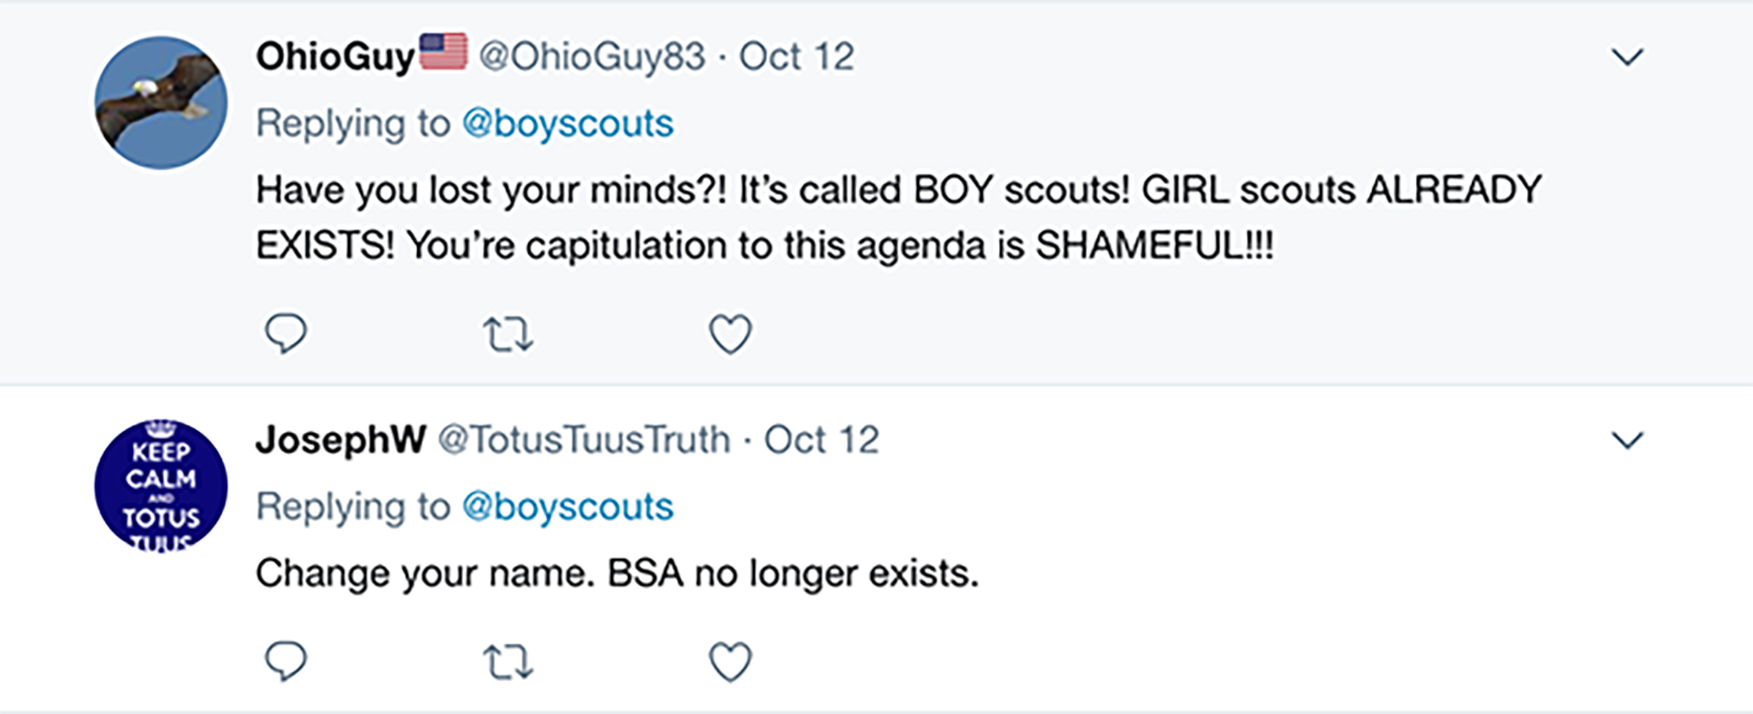 The public wasn't completely on board with the BSA's recent decision to include girls in the program. Many reiterated that boys and girls have their own organizations already, while some ackowledged the honor of becoming an Eagle Scout and said including